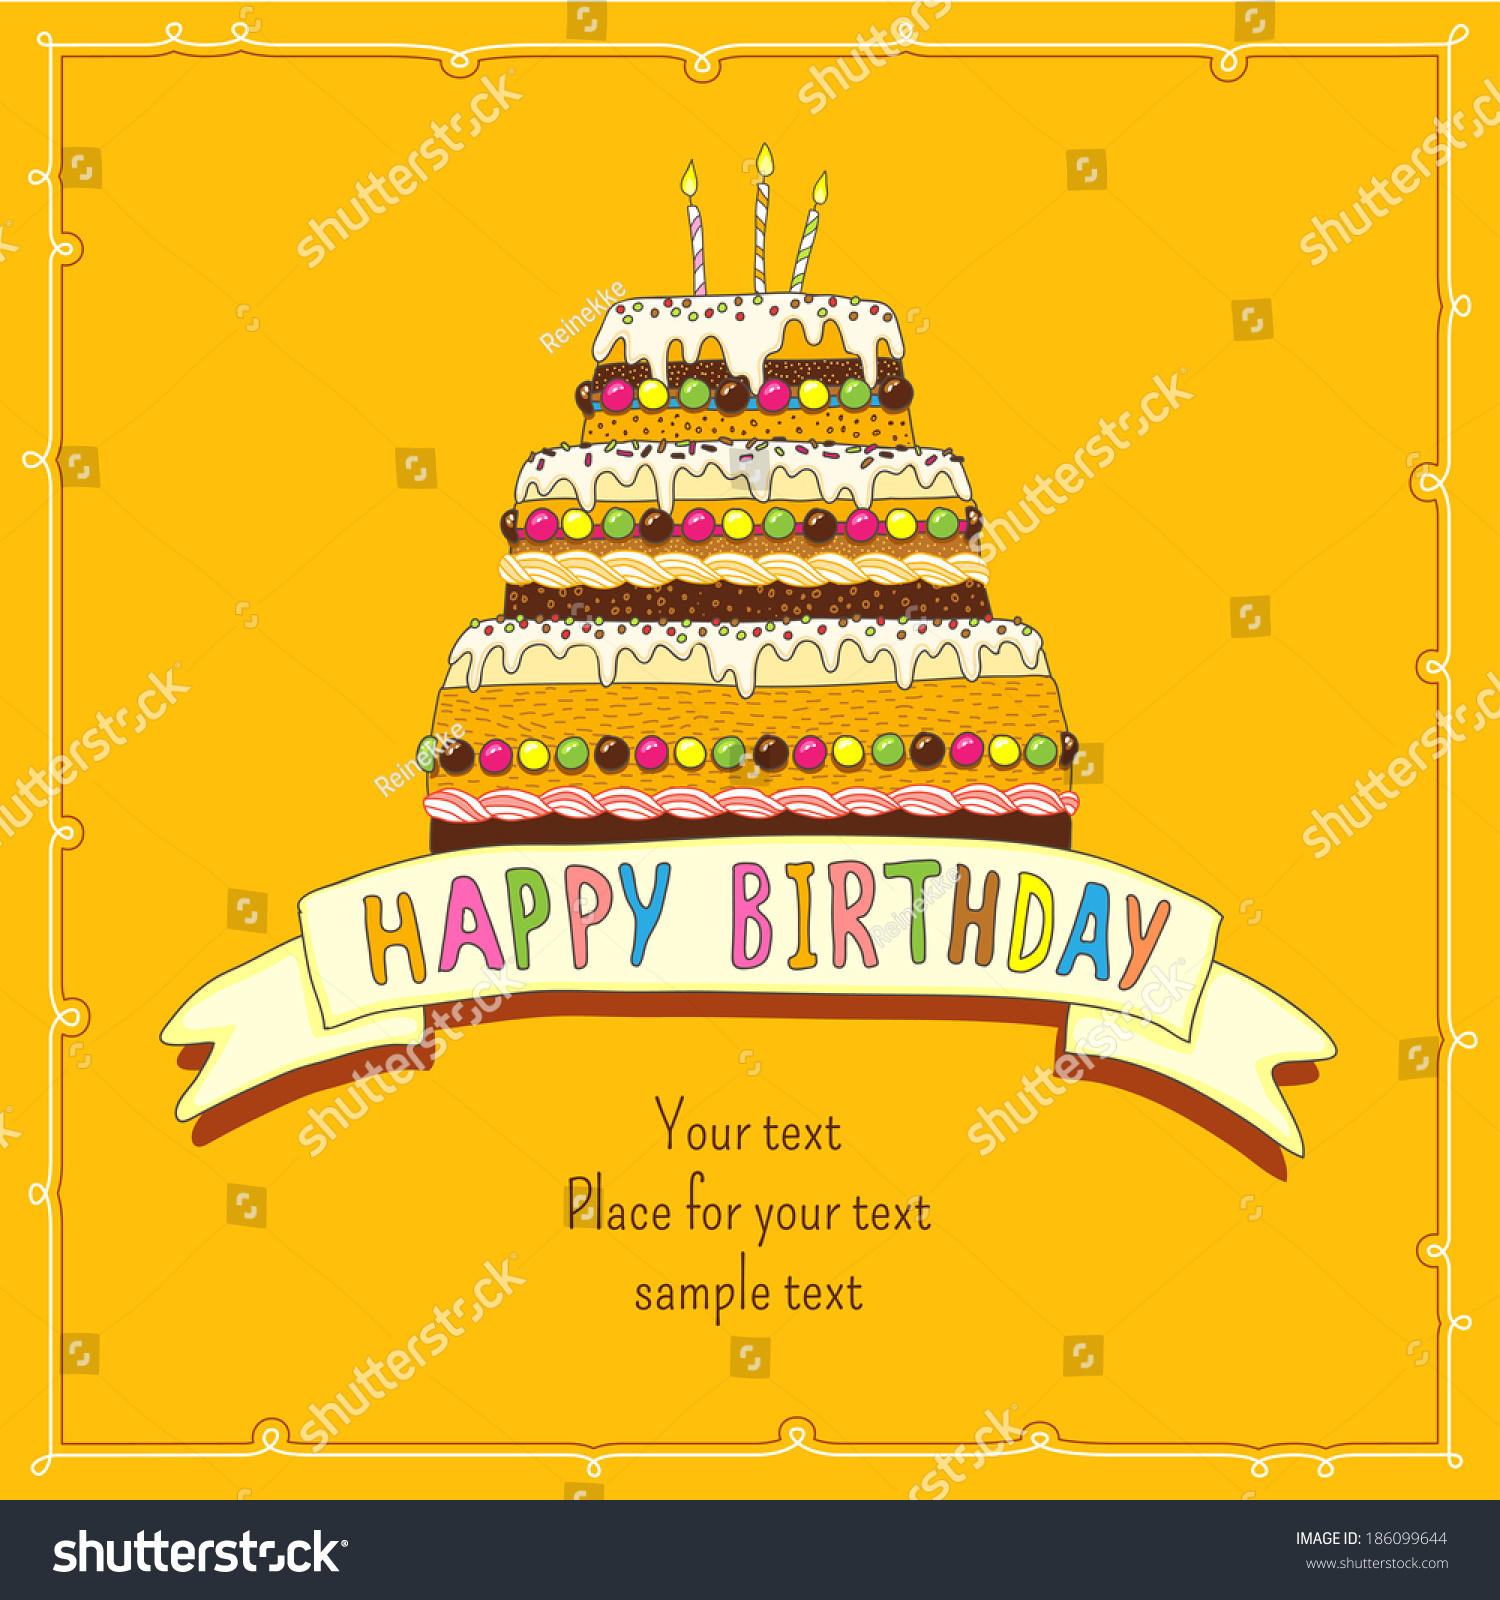 Birthday Greeting Card Big Cake Burning Stock Vector 186099644